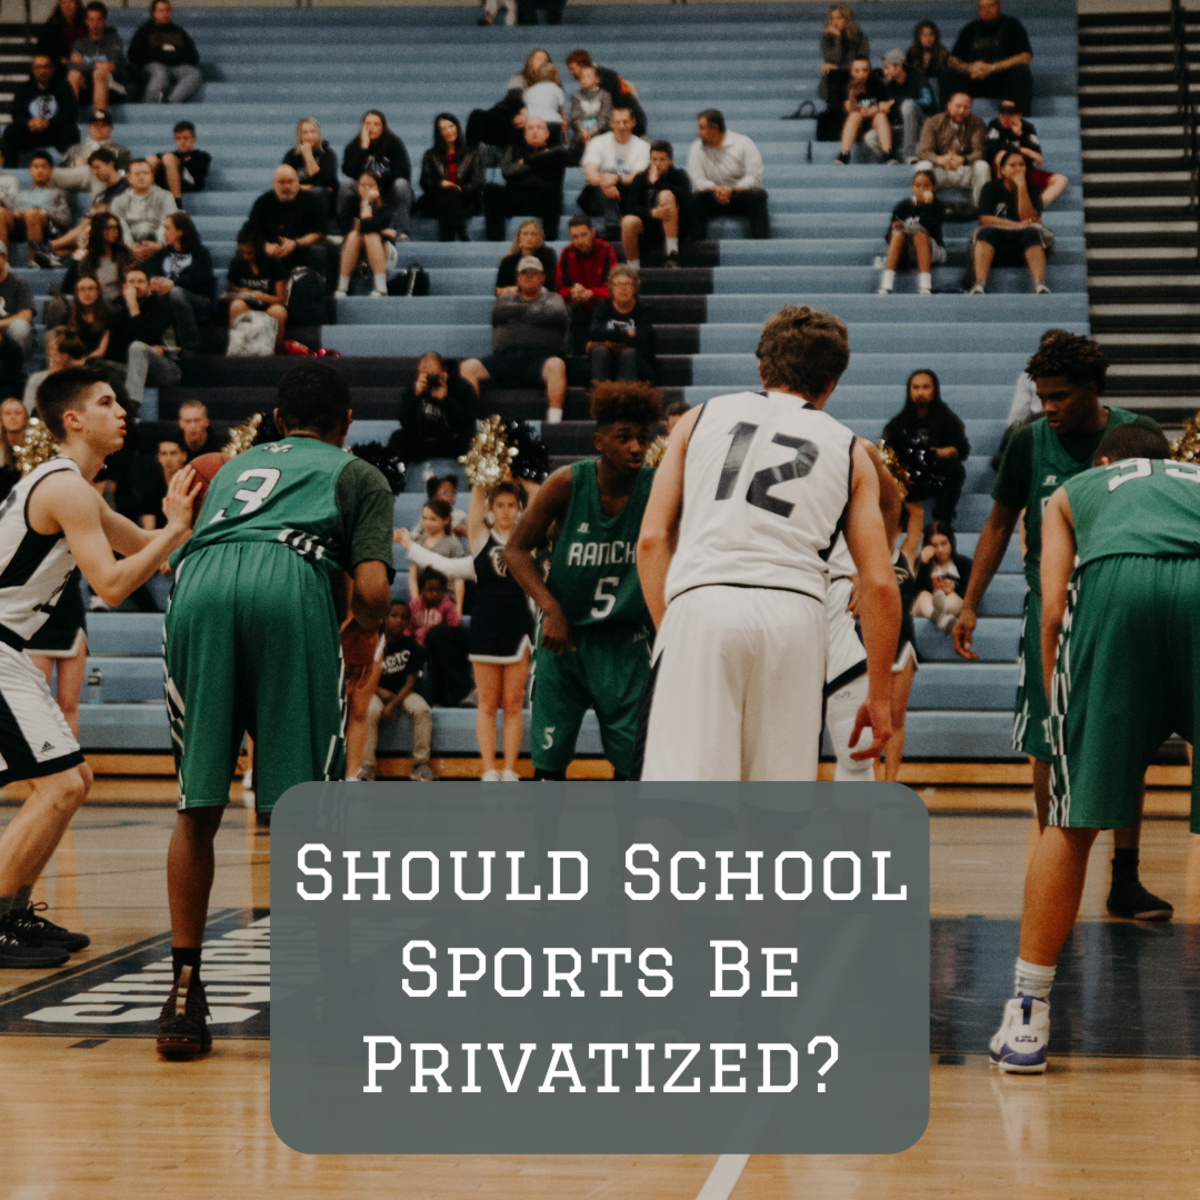 High school basketball and football games are an iconic tradition, but should we have to fund them with taxes?